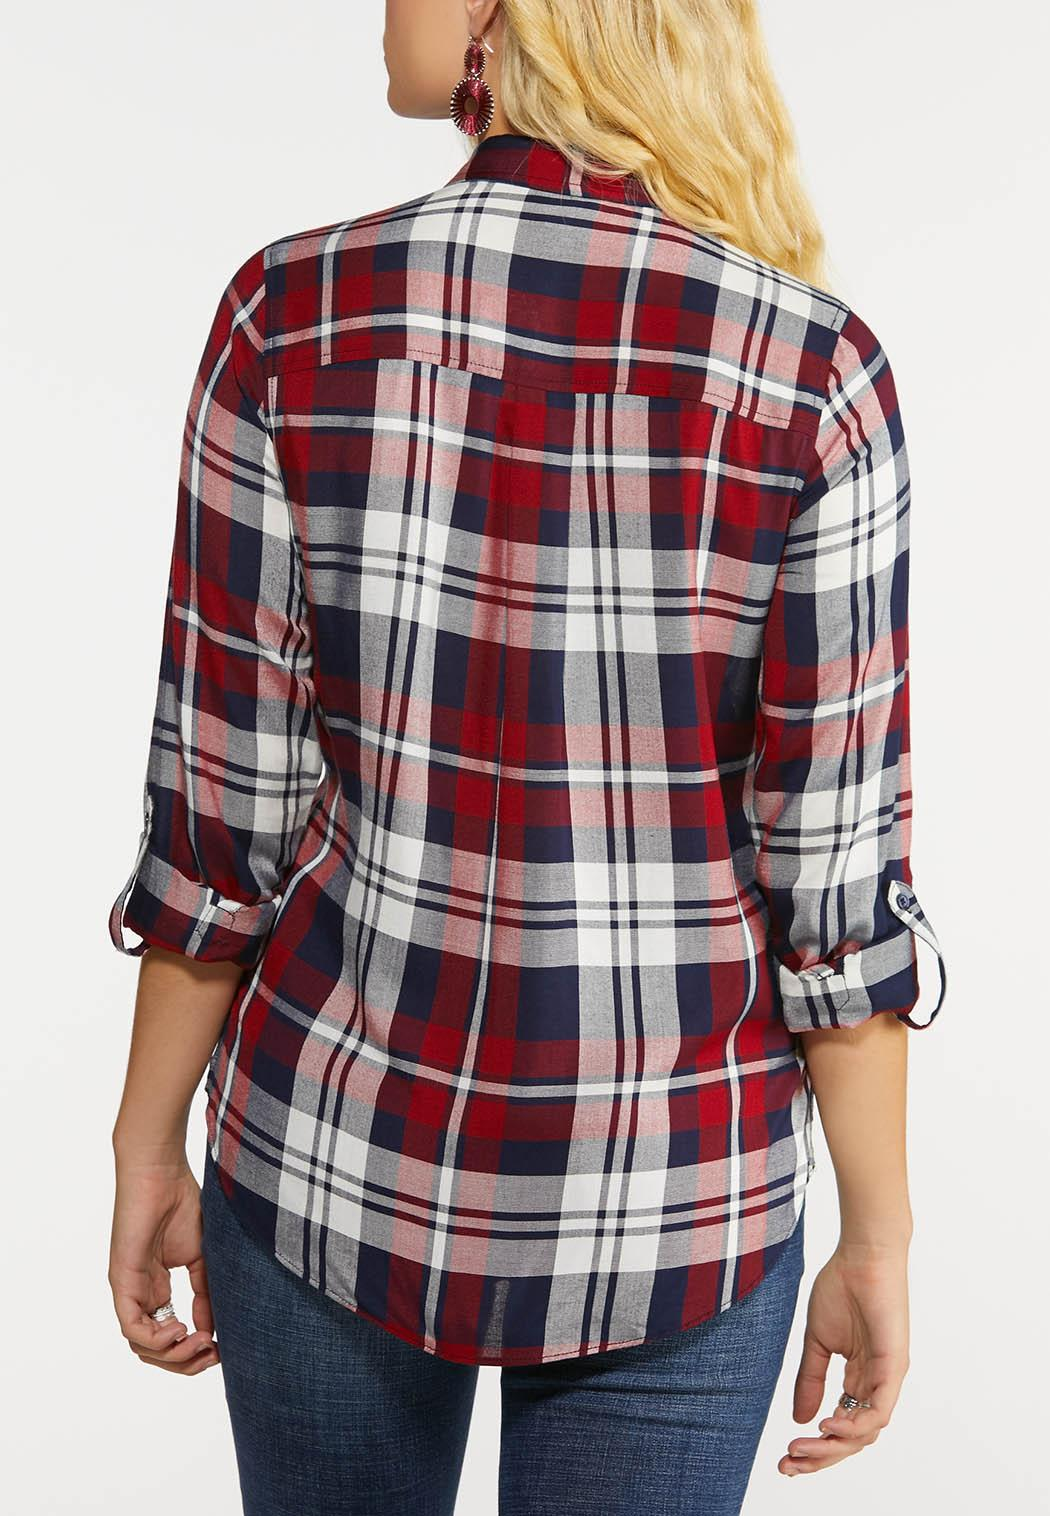 Navy And Red Plaid Shirt (Item #43999511)